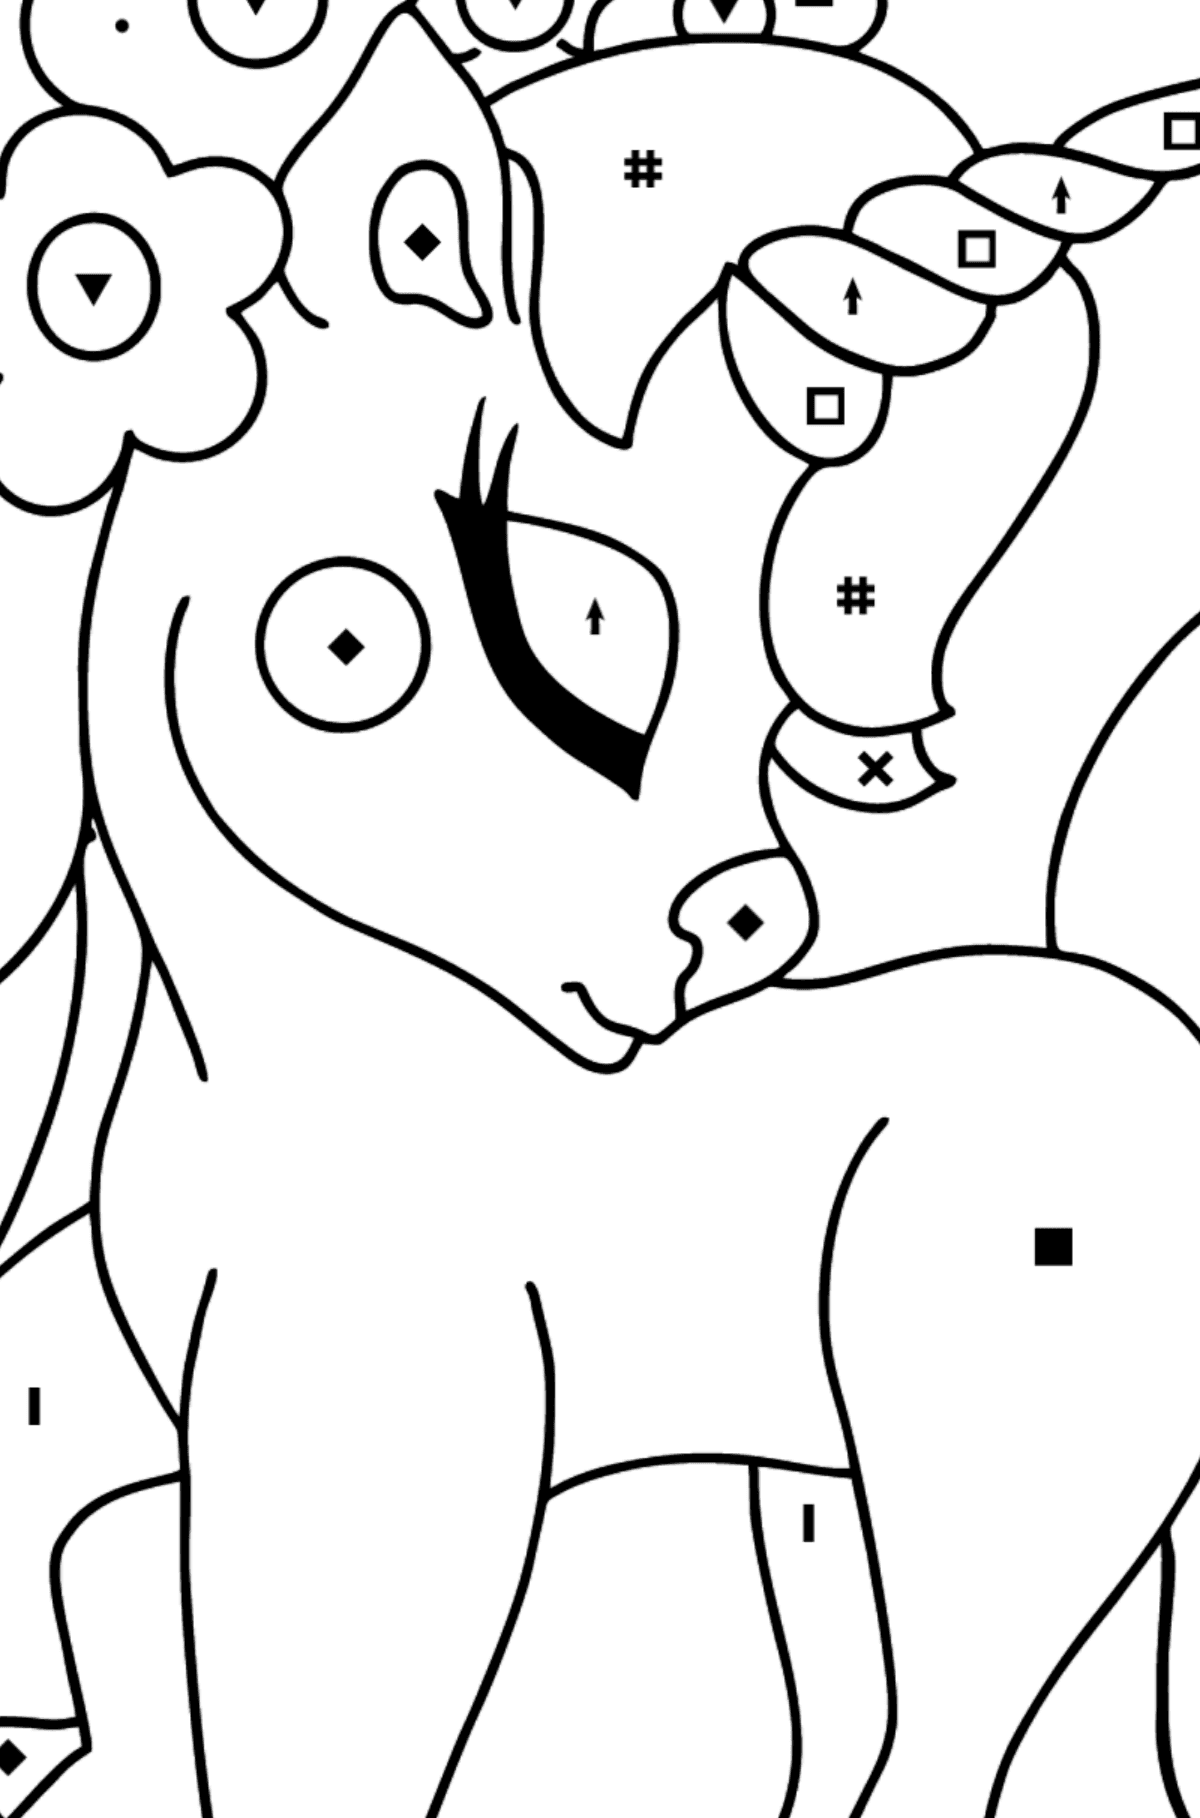 Coloring Page - A Dreamy Unicorn - Coloring by Symbols for Kids